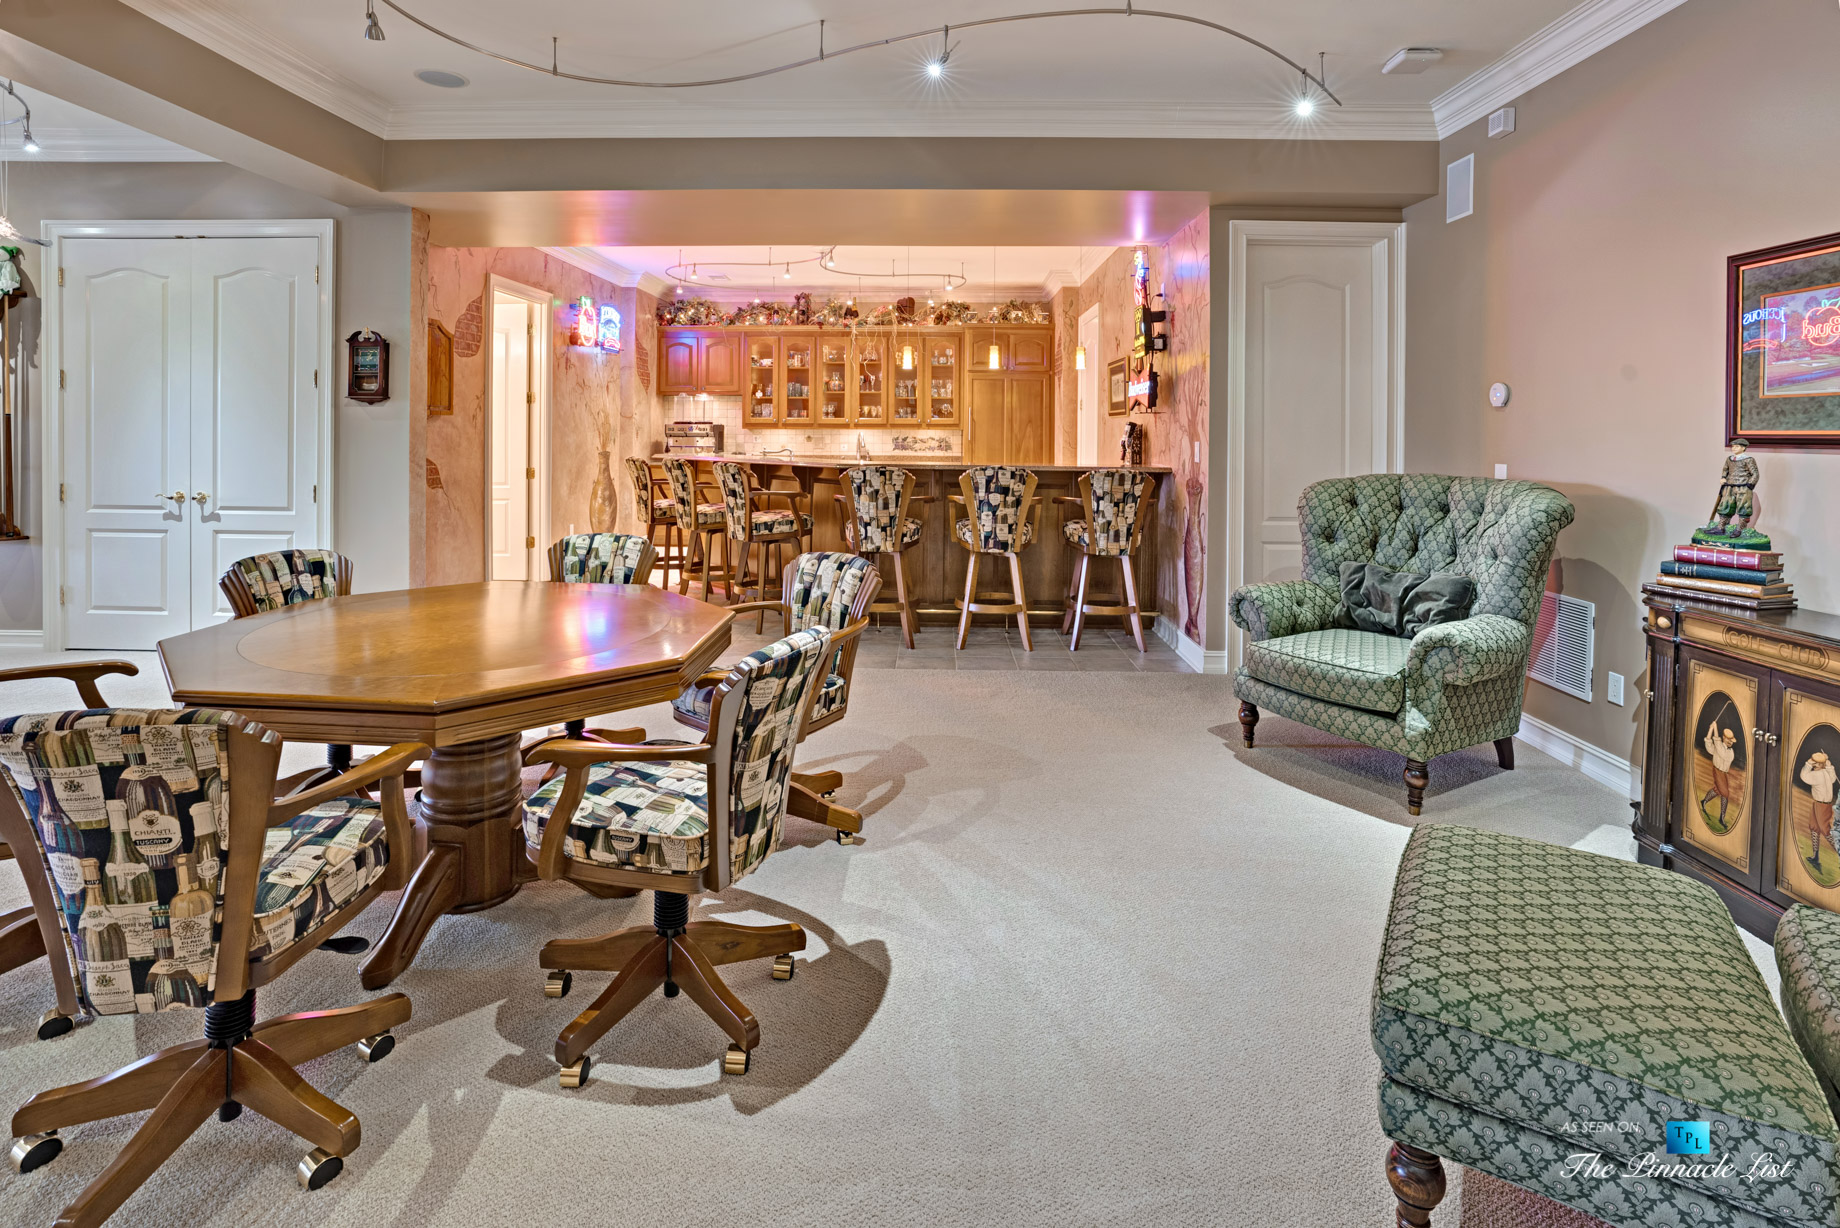 2219 Costley Mill Rd NE, Conyers, GA, USA - Recreation Room and Bar - Luxury Real Estate - Equestrian Country Home